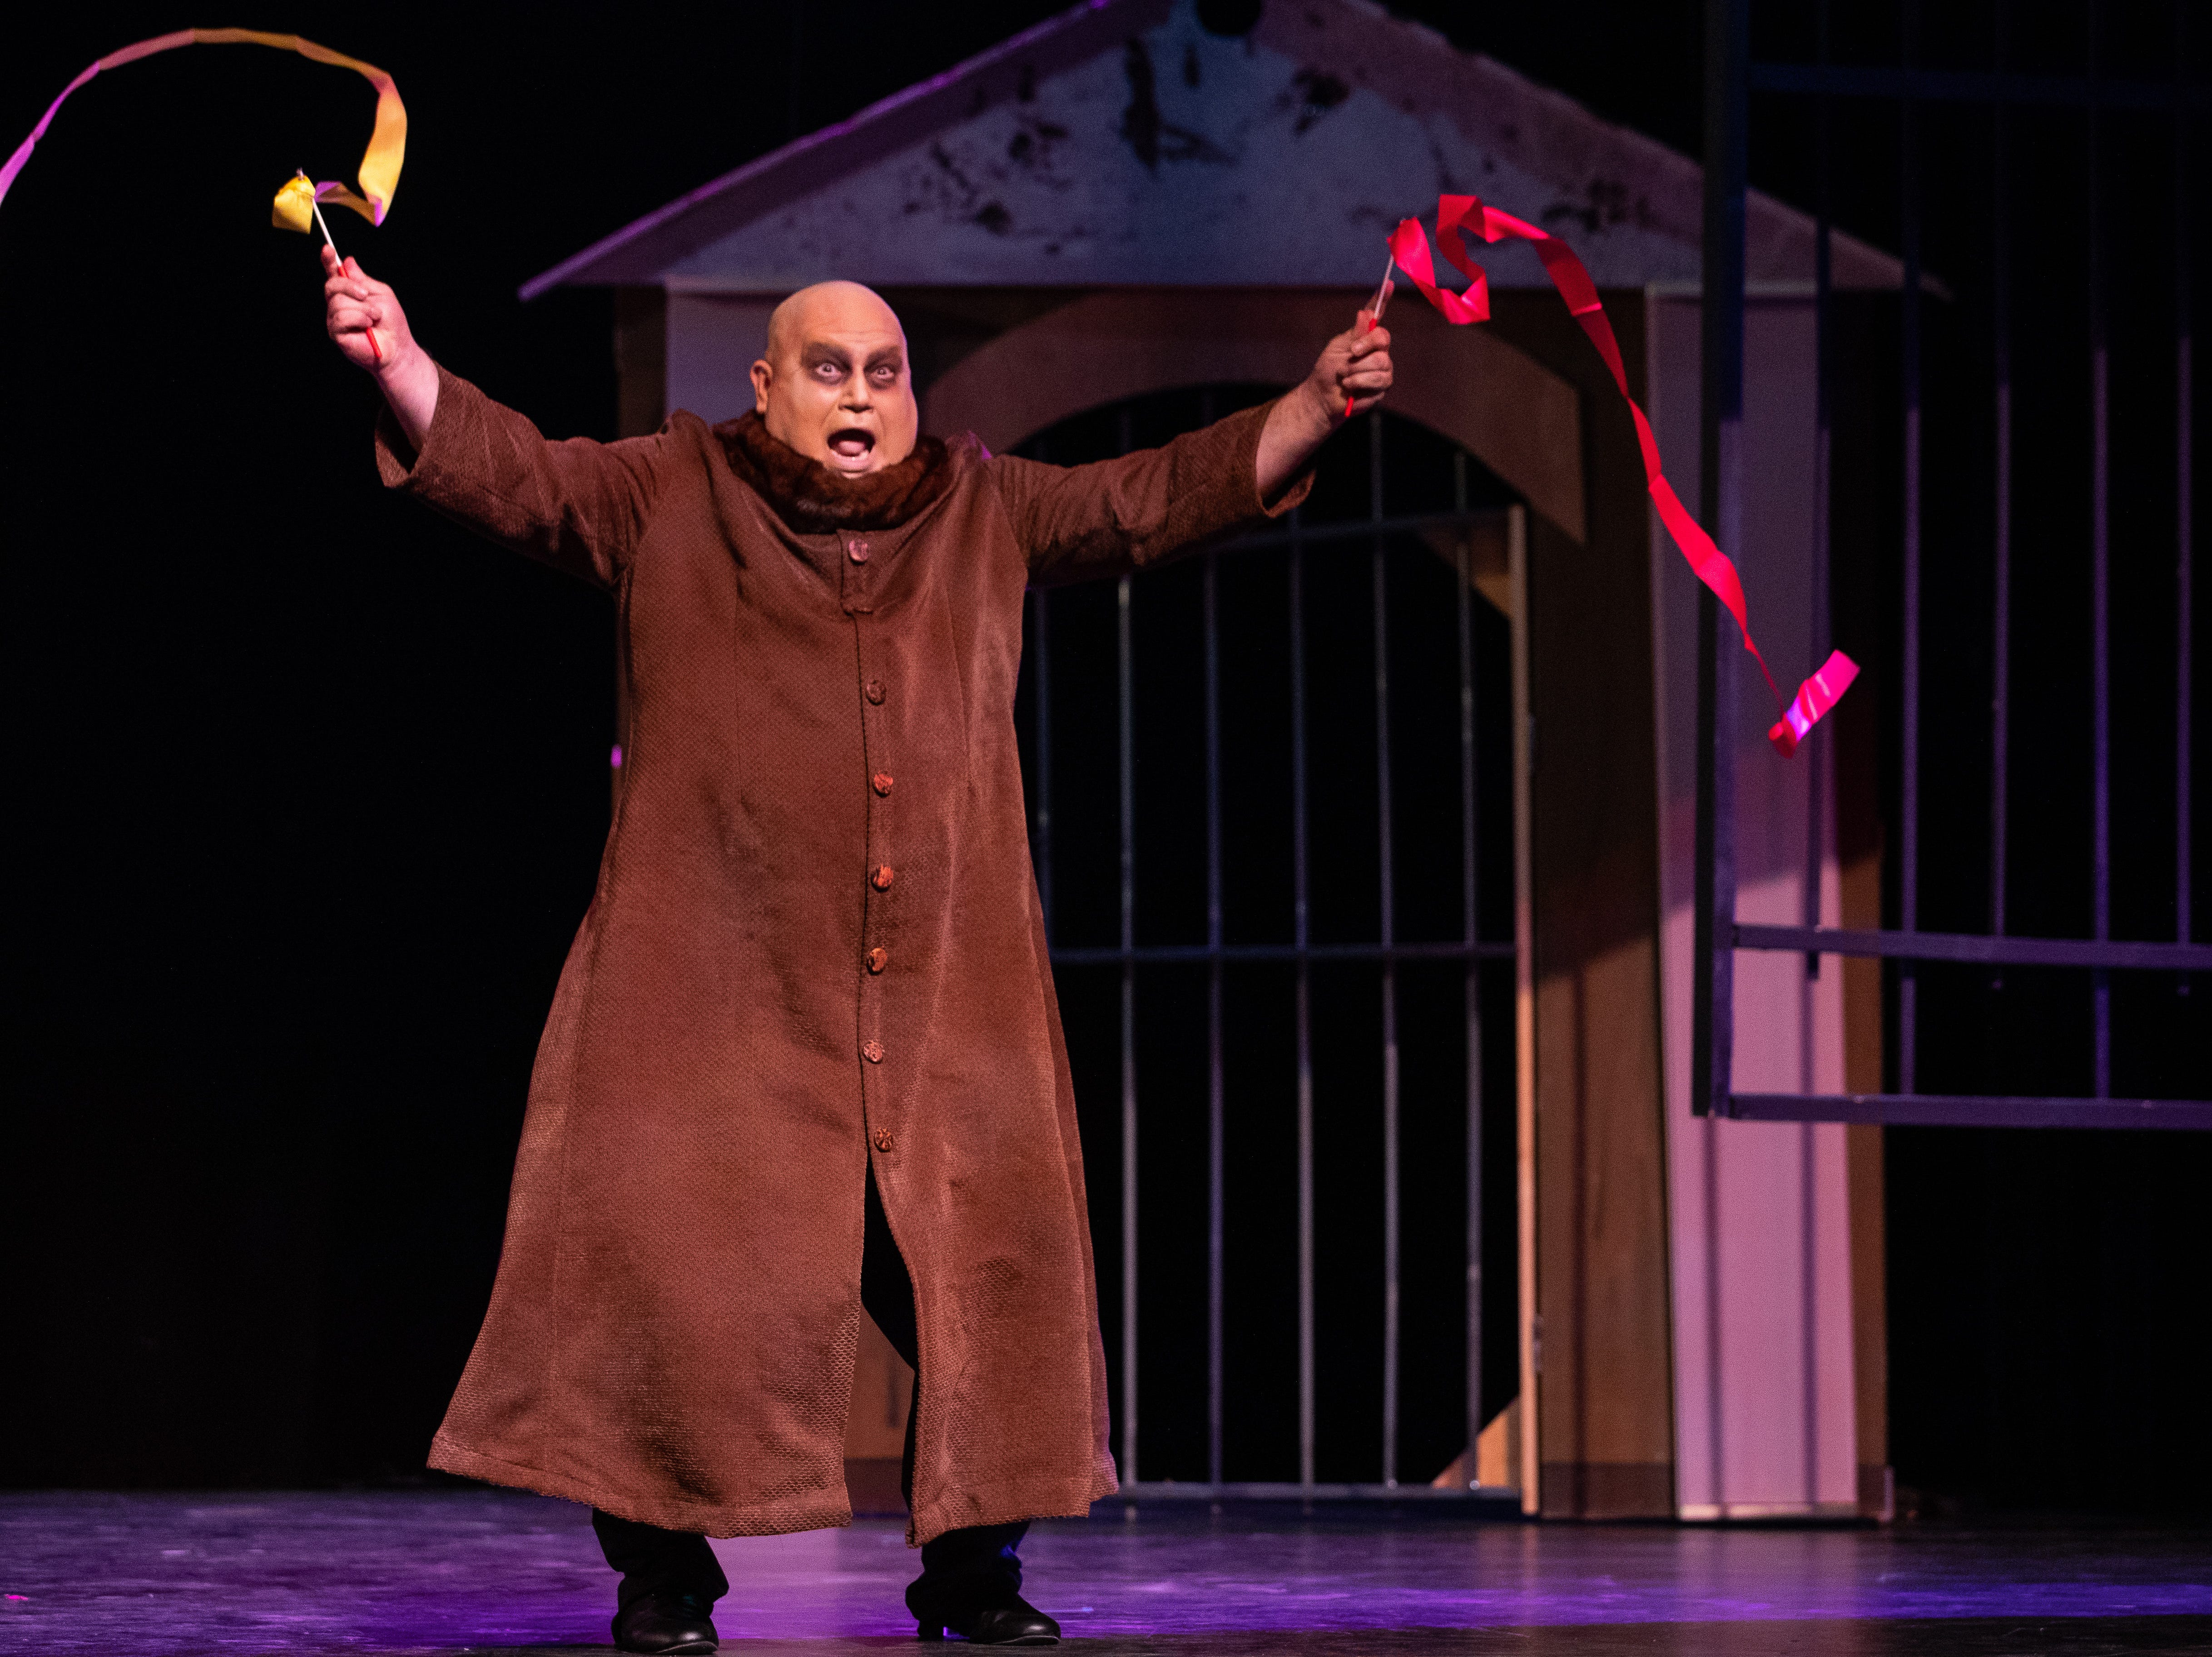 Uncle Fester played by Andres Elizondo II in the Harbor Playhouse's production of Addams Family running from Sept. 21 - October 31st.